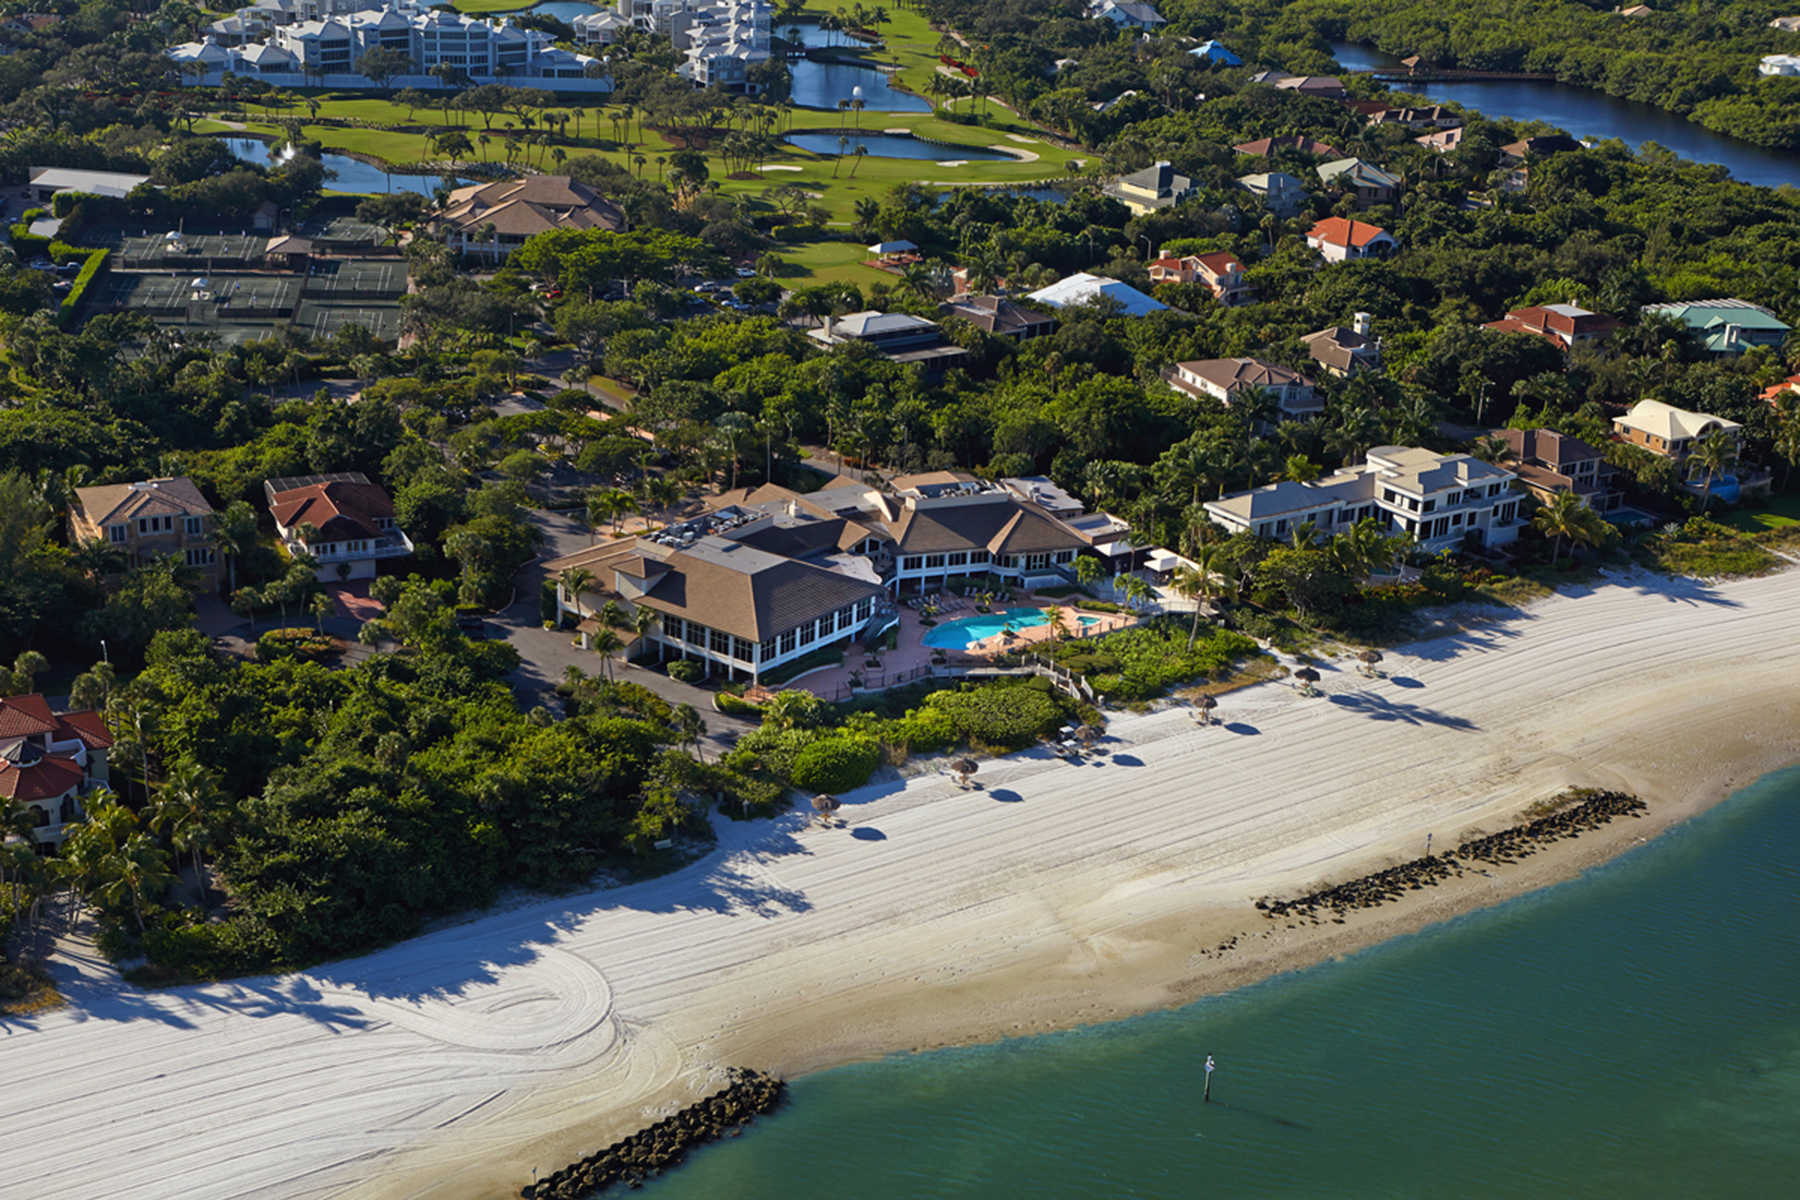 Land for Sale at MARCO ISLAND - LIVE OAK LANE 367 Live Oak Ln Marco Island, Florida 34145 United States